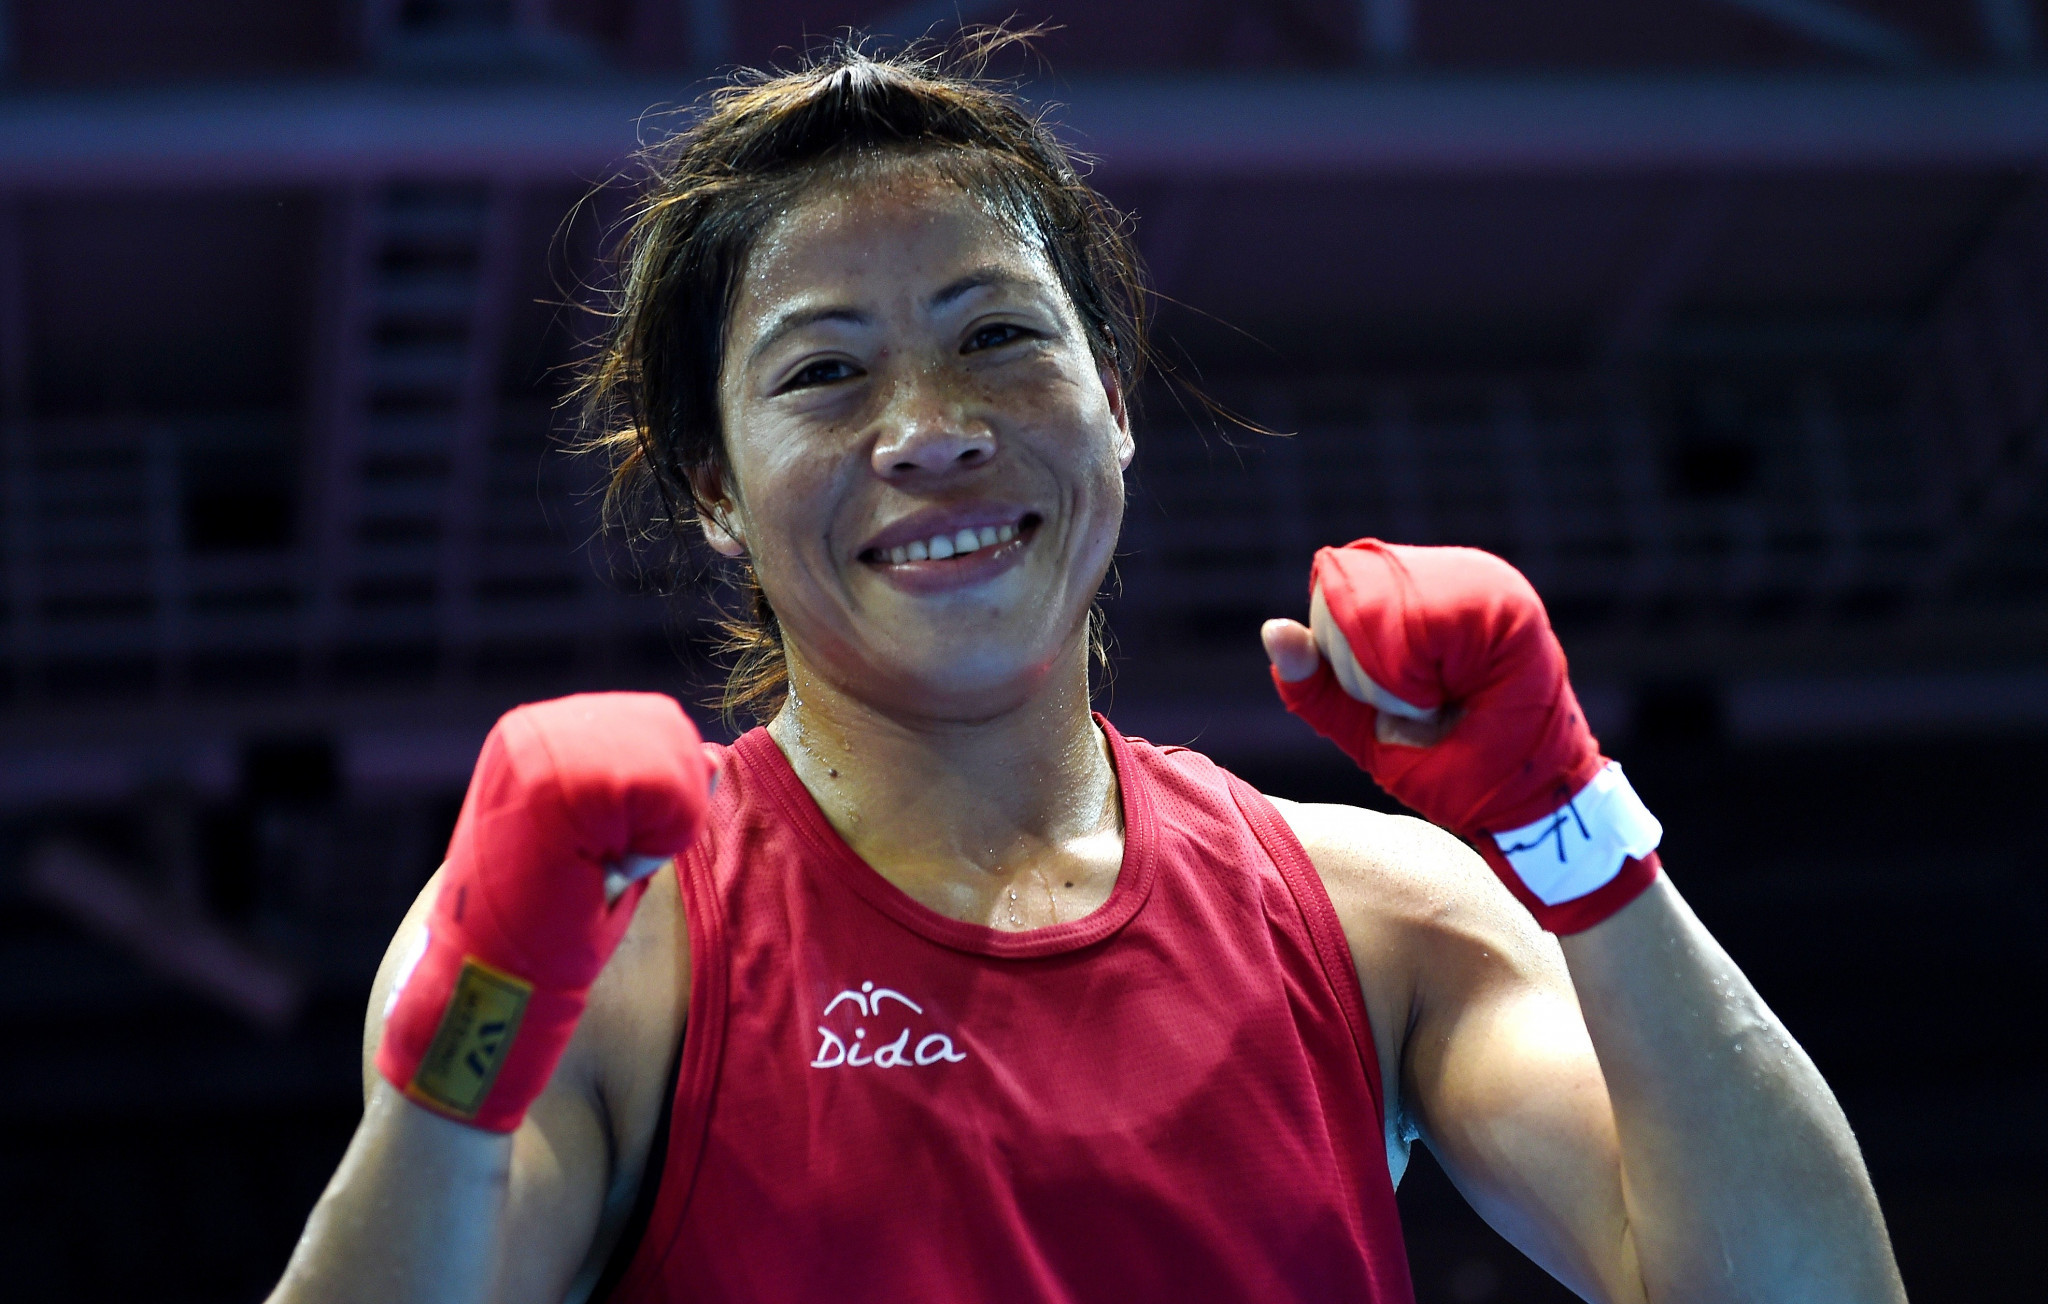 Boxing world champion Kom to step up Tokyo 2020 preparations at national camp